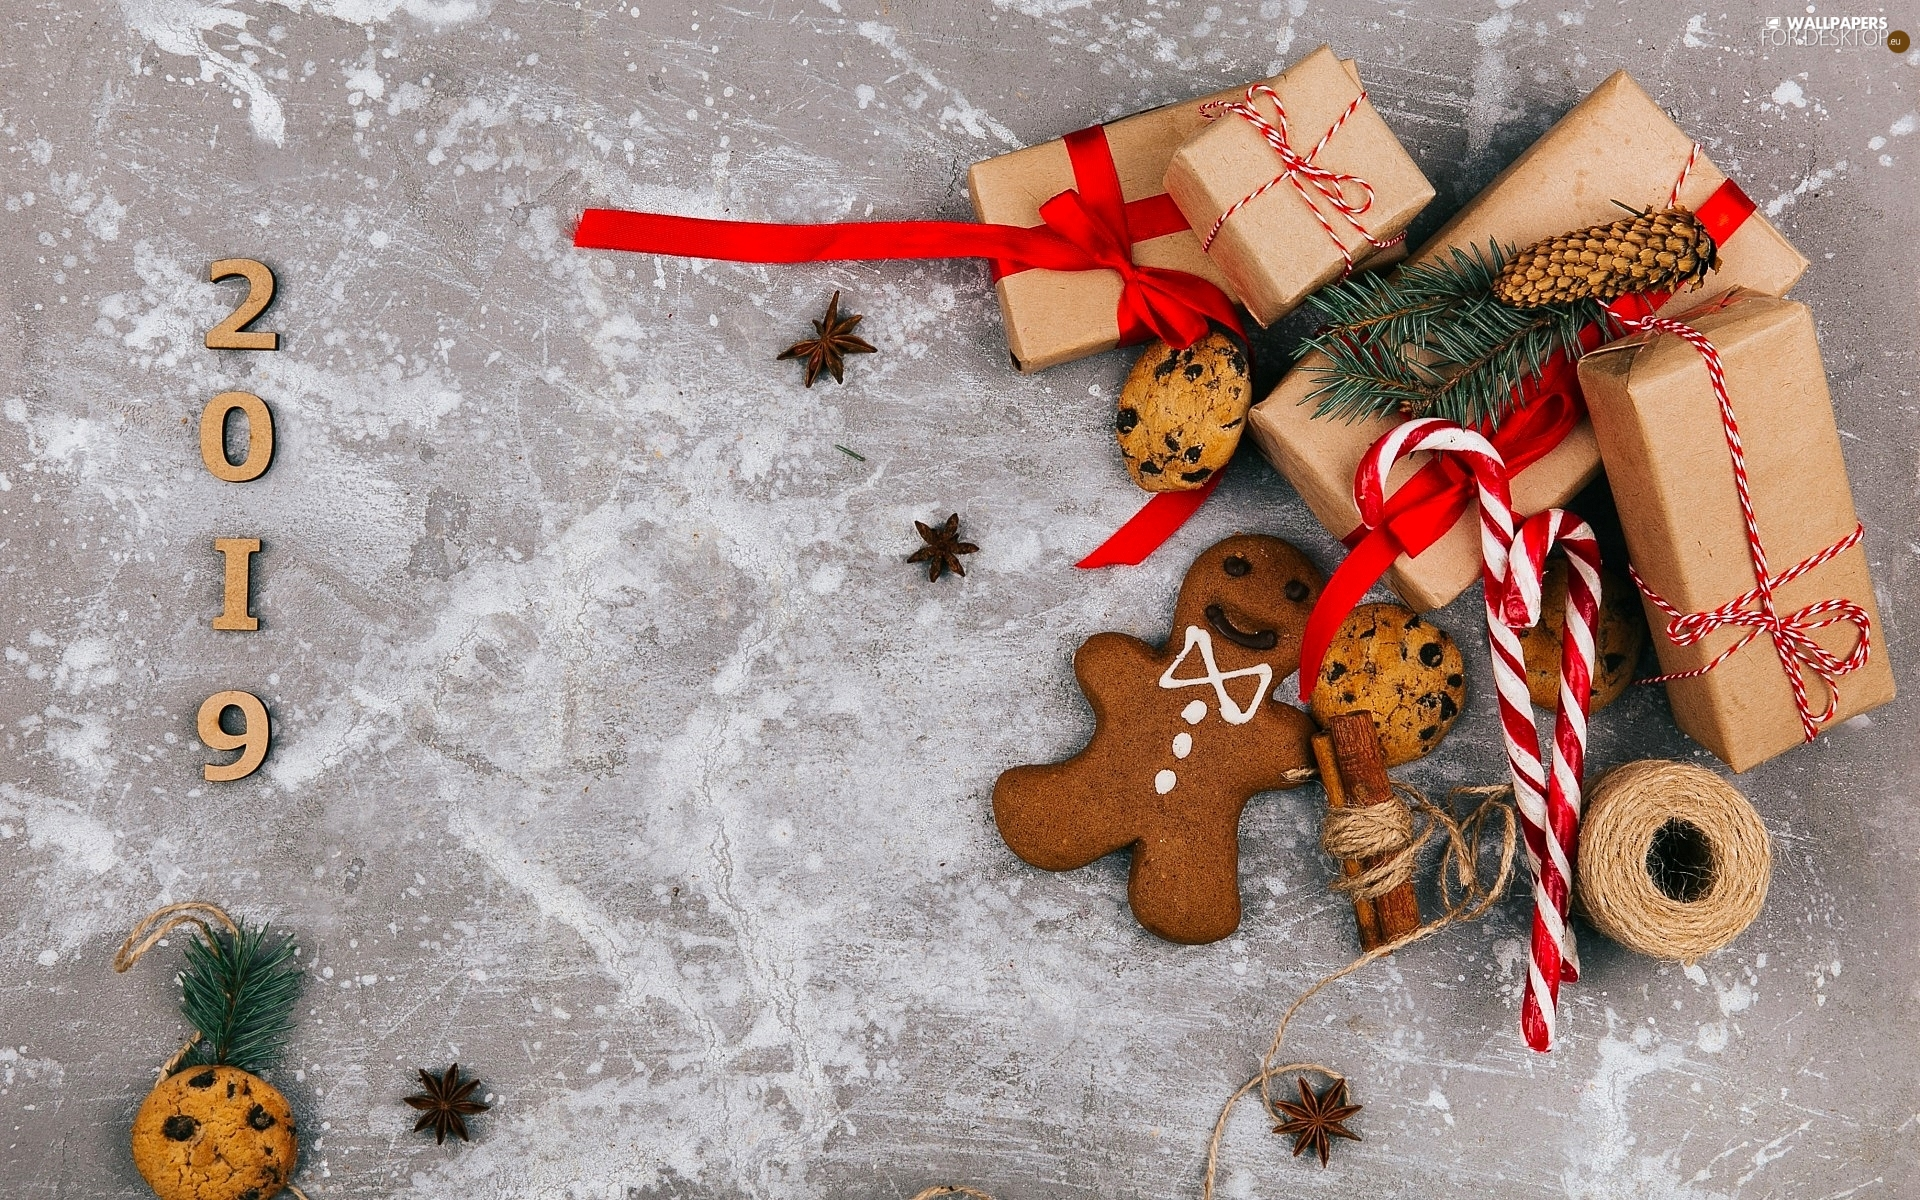 anise, twine, gifts, Cookies, Christmas